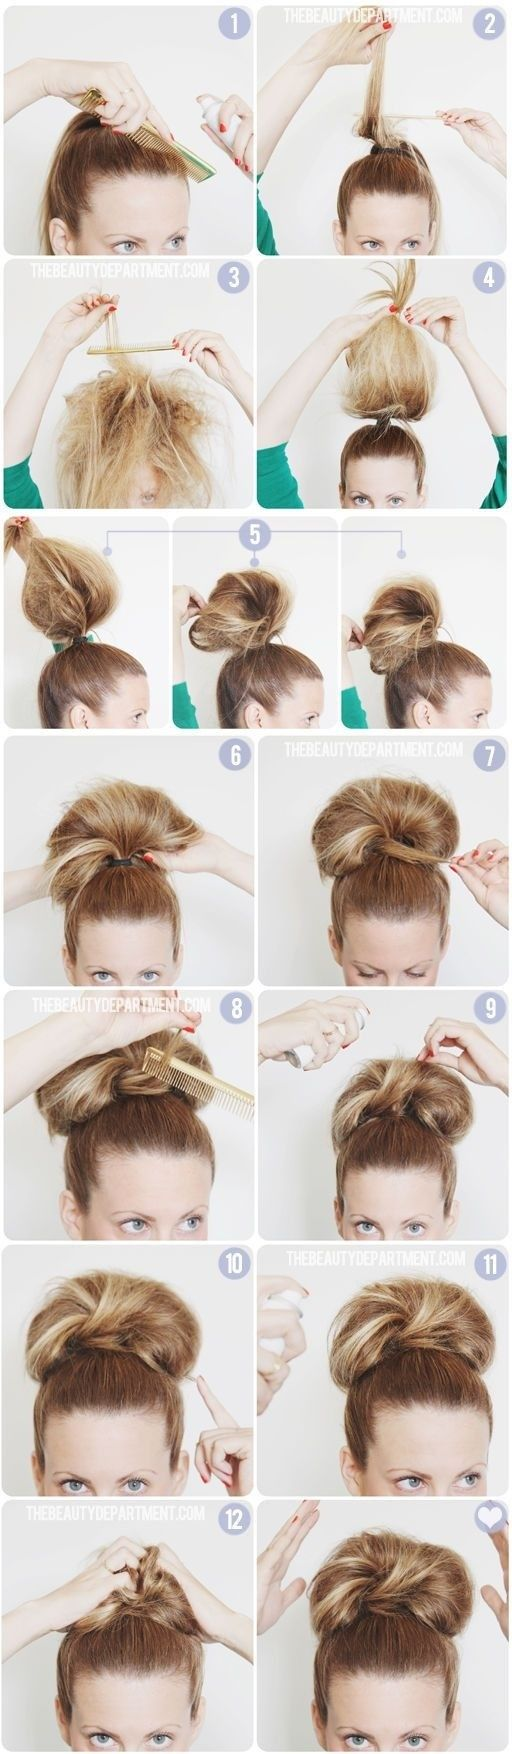 10 Super Easy Updo Hairstyles Tutorials | PoPular Haircuts